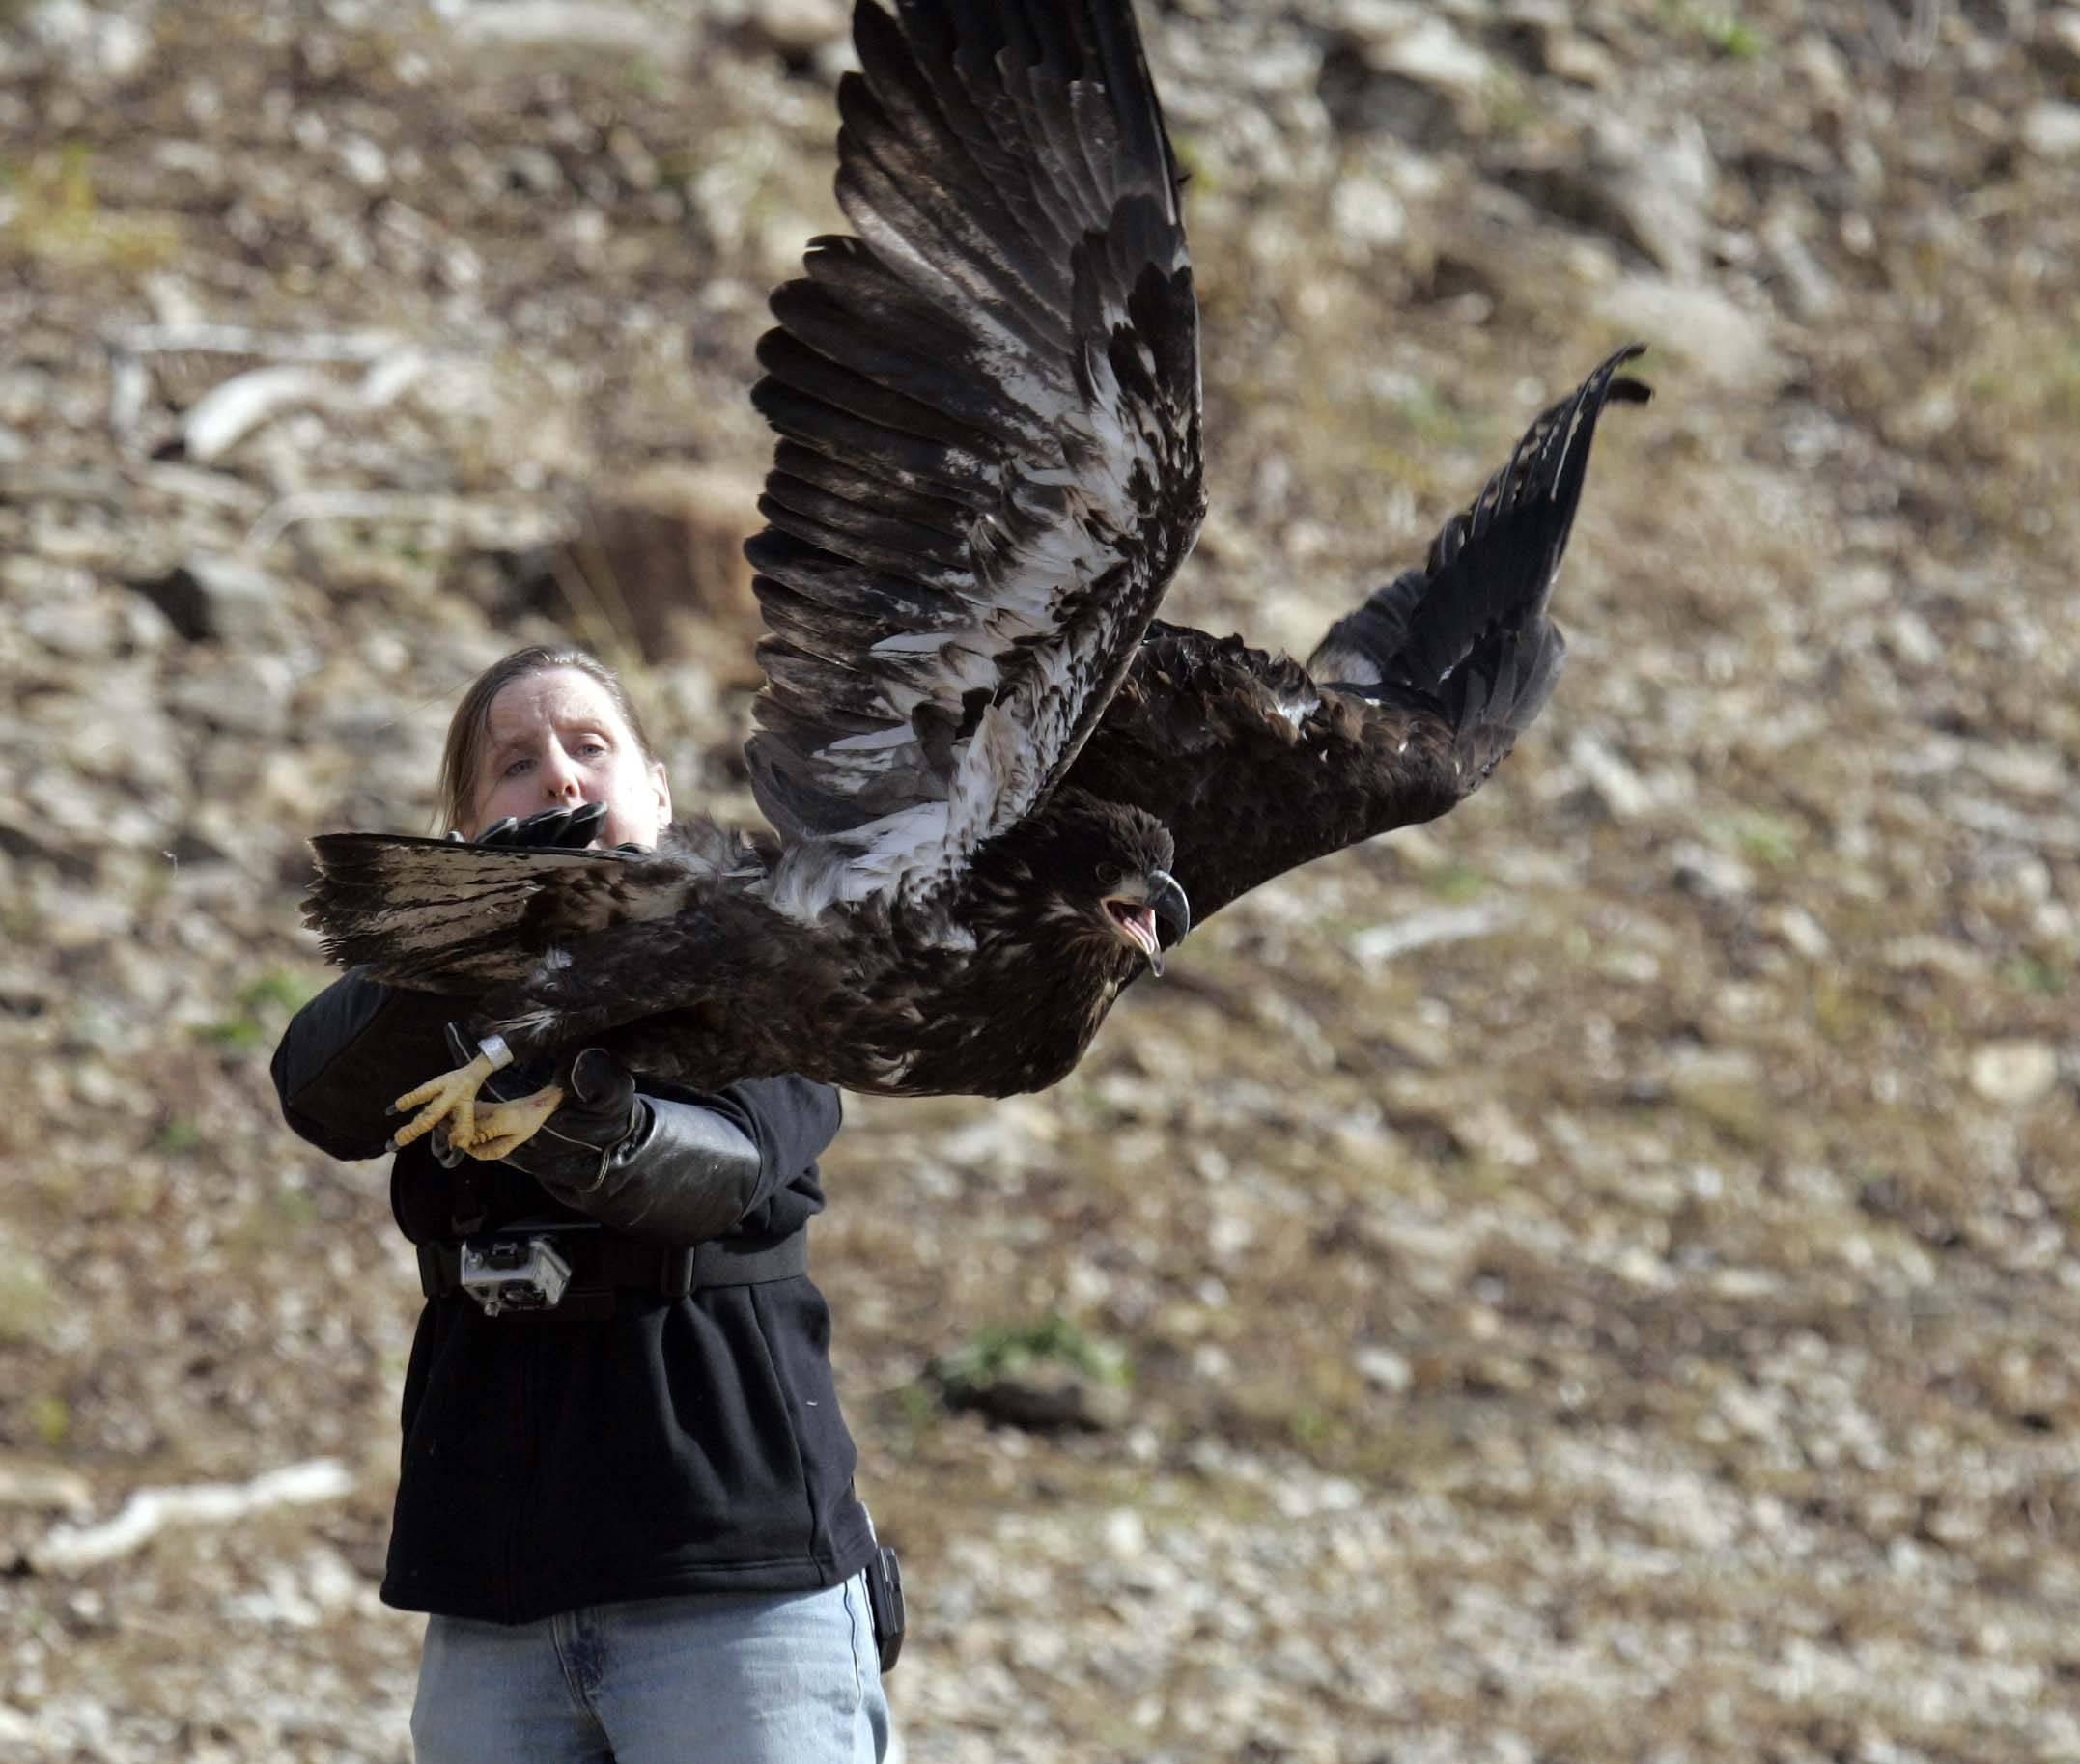 Brian Hill/bhill@dailyherald.comDawn Keller founder and director of Flint Creek Wildlife Rehabilitation releases the second of two eagles Saturday, November 12, 2011 at Starved Rock State Park Utica. The birds were rescued from a fallen nest at Mooseheart.